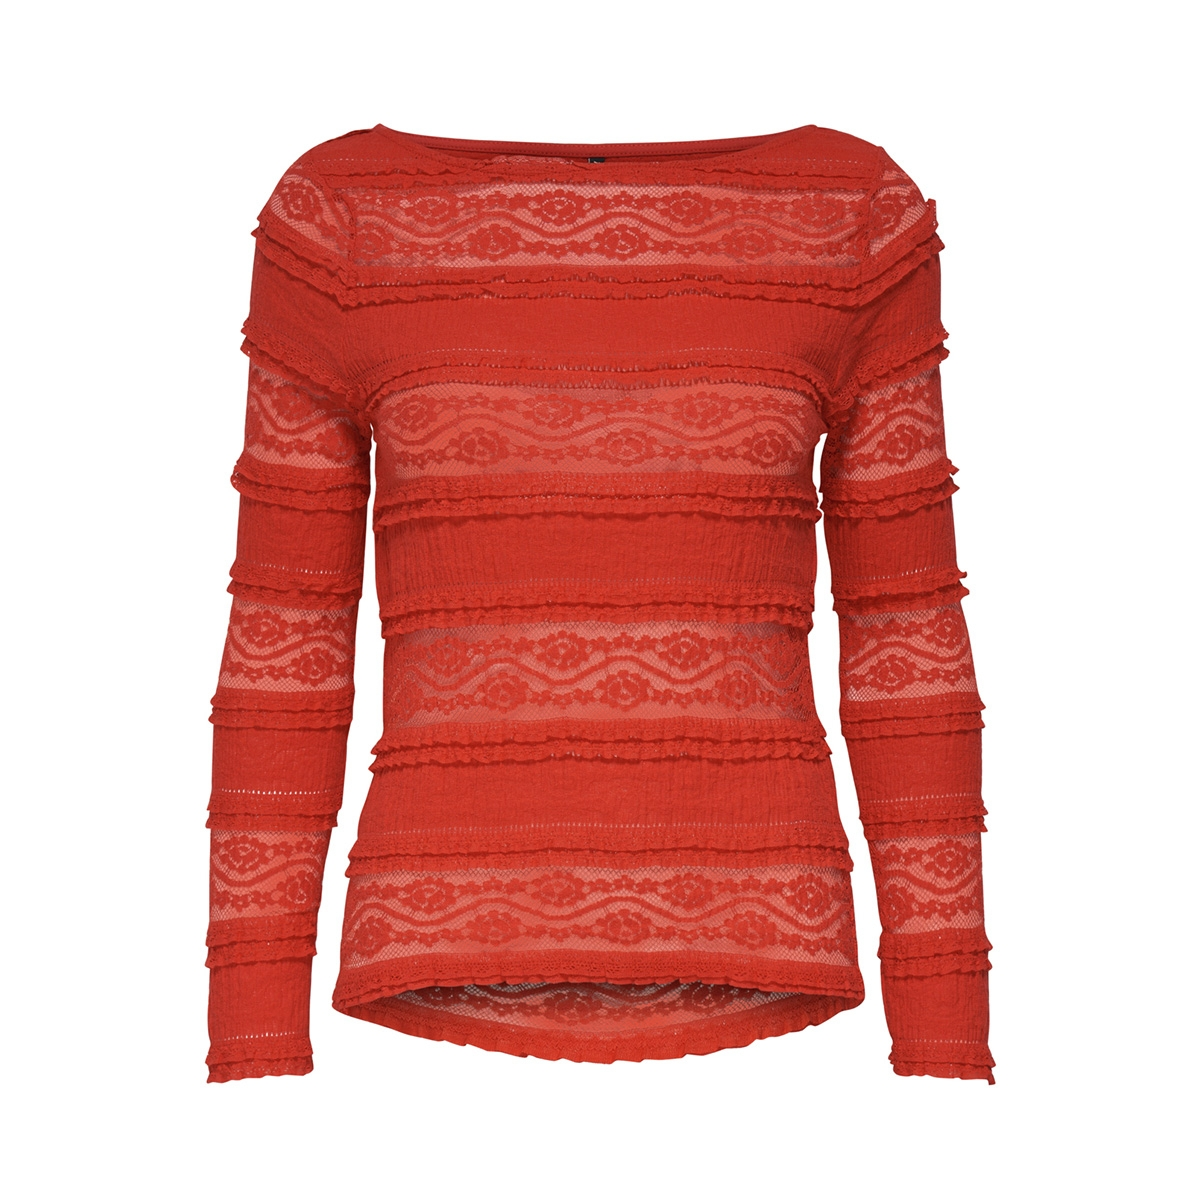 onlmarjorie l/s boatneck top jrs 15173980 only t-shirt mars red